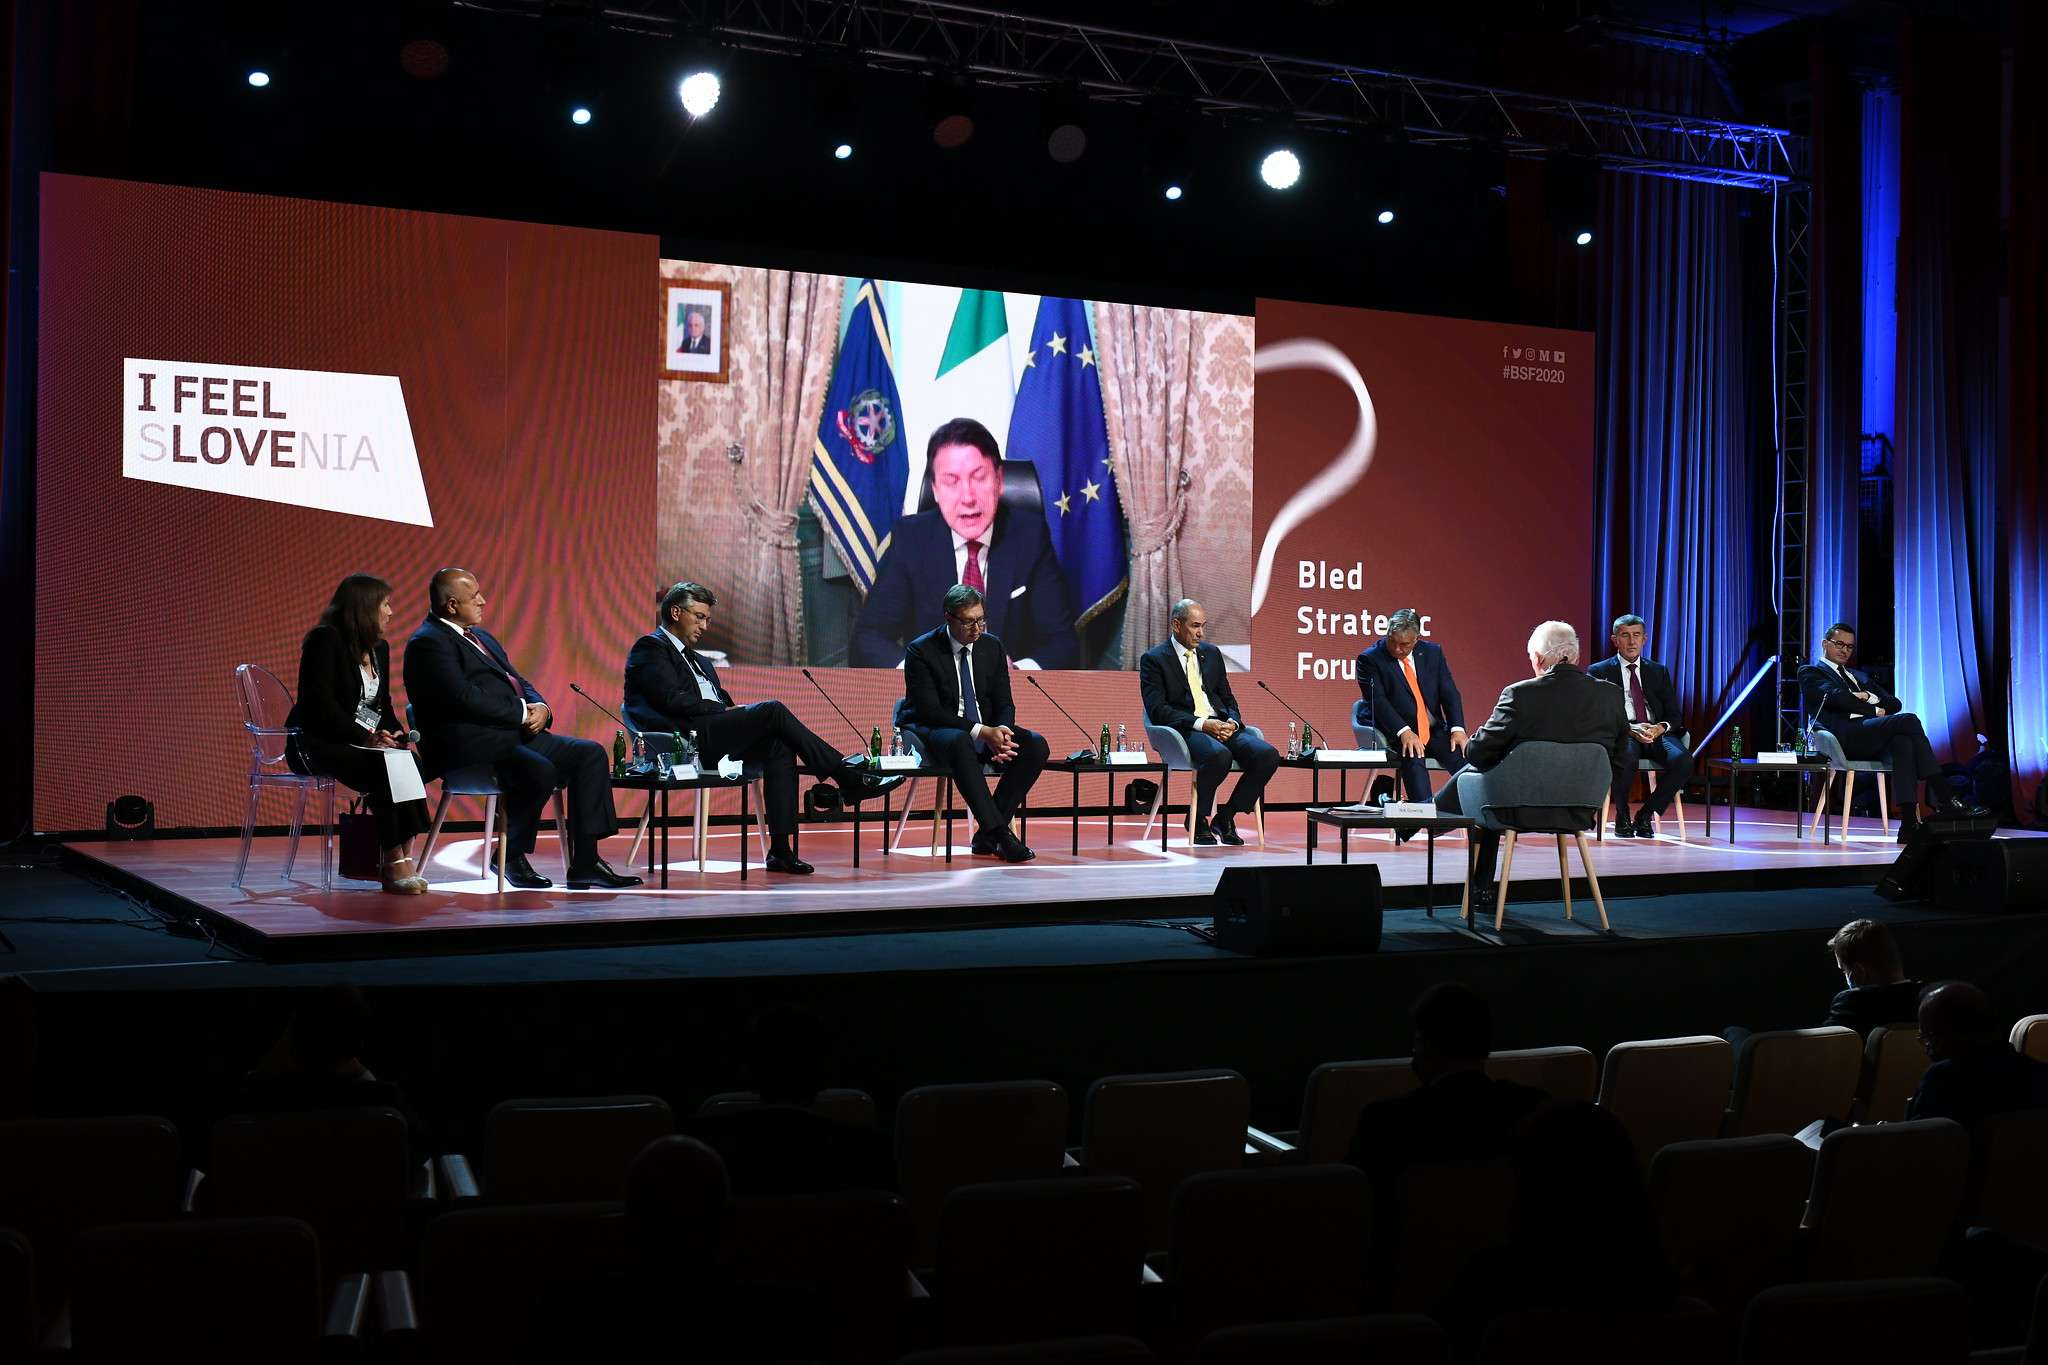 BSF 2020 Leaders' Panel: The Central and Eastern region gaining in importance